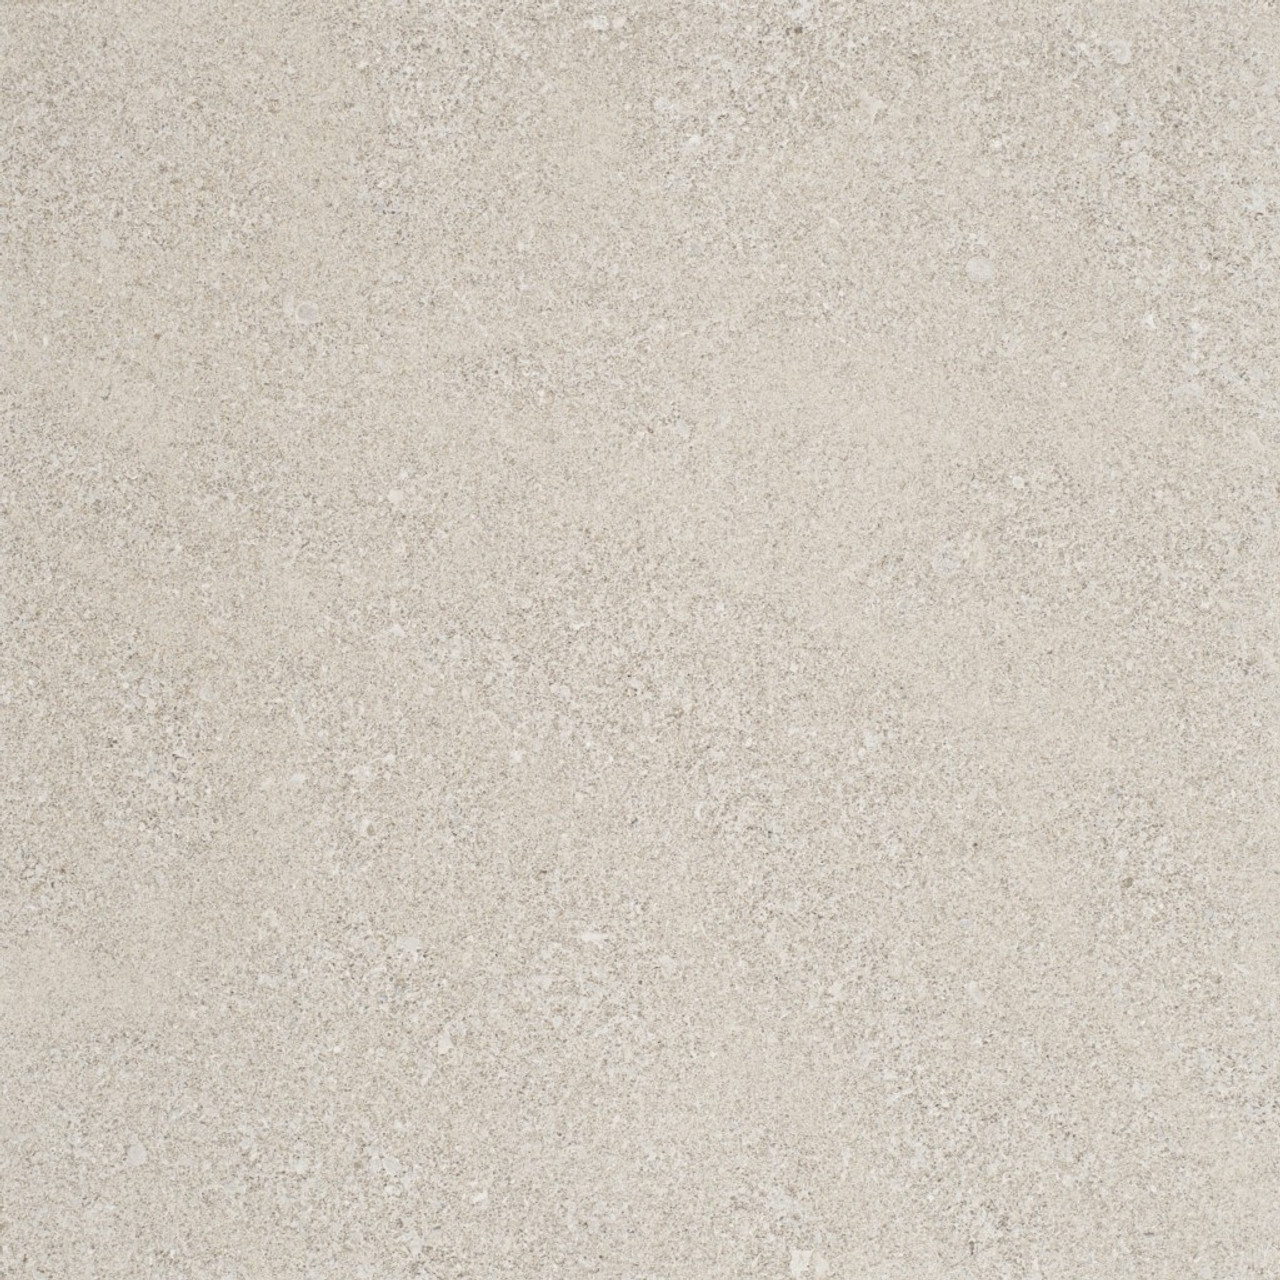 Standard buff limestone sample